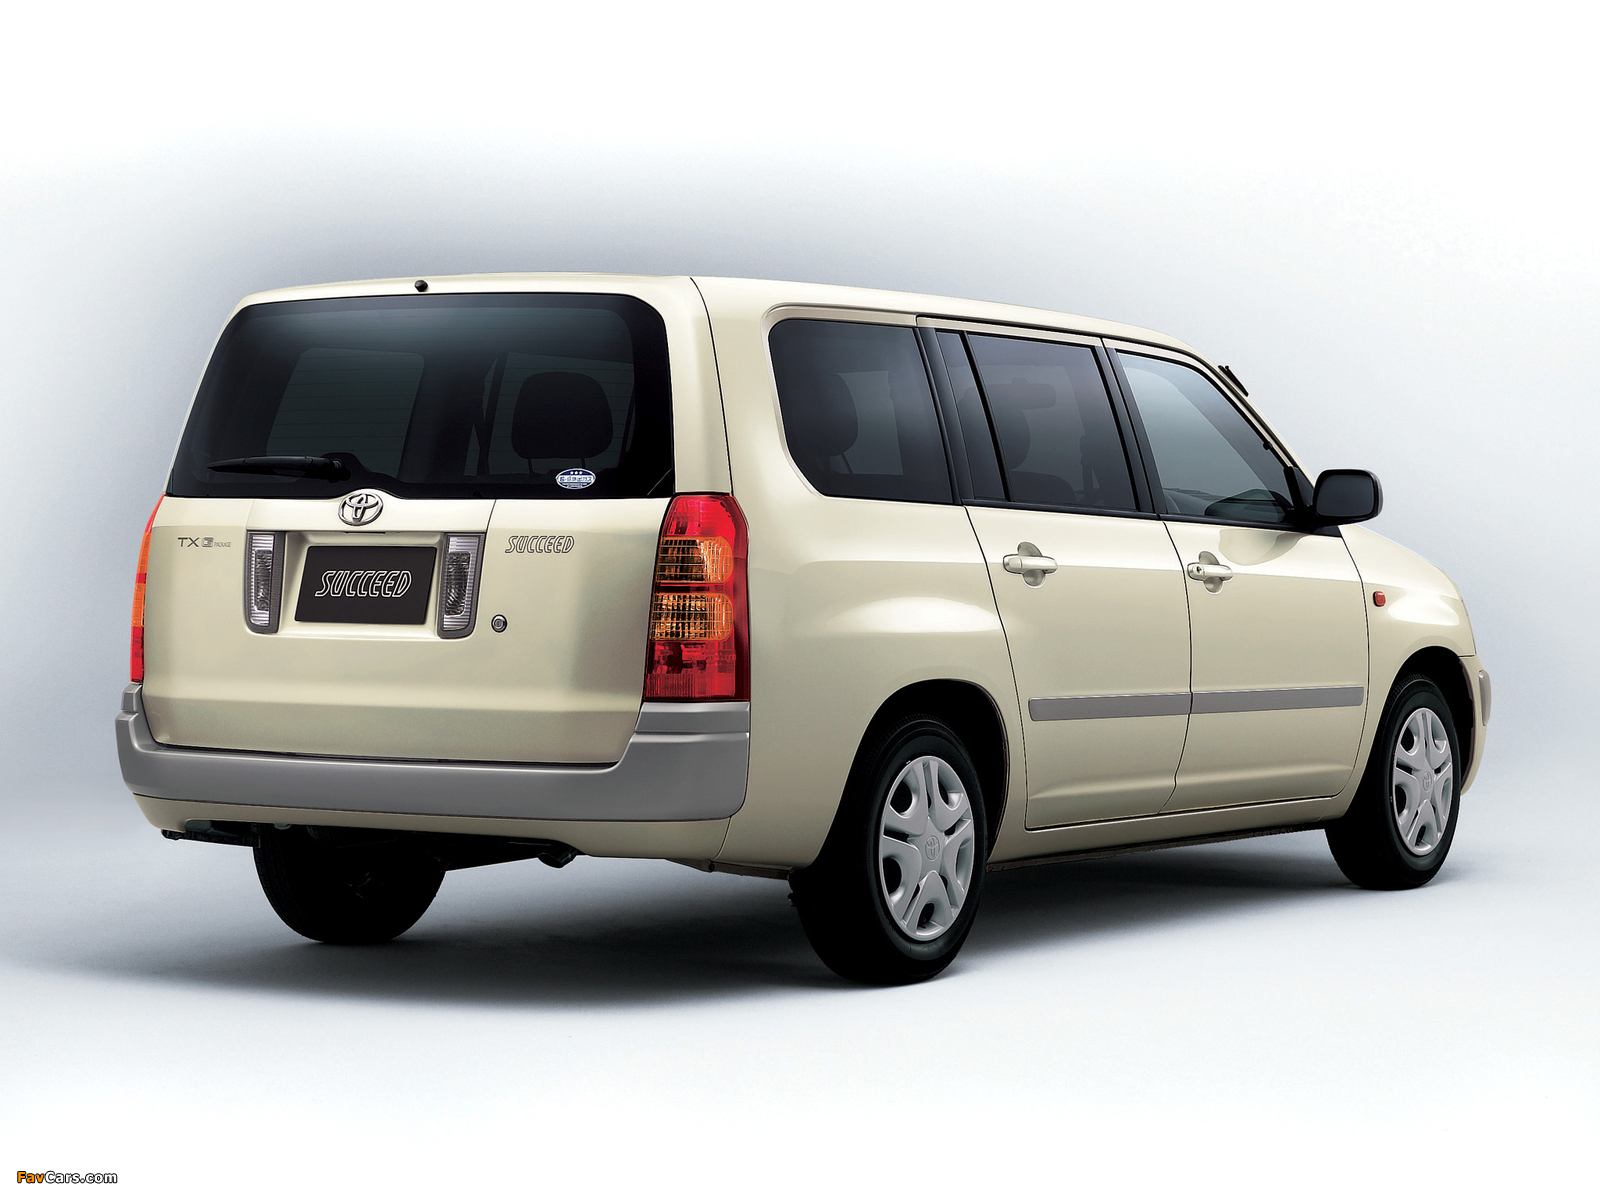 Toyota Succeed Wagon (CP50) 2002 images (1600 x 1200)